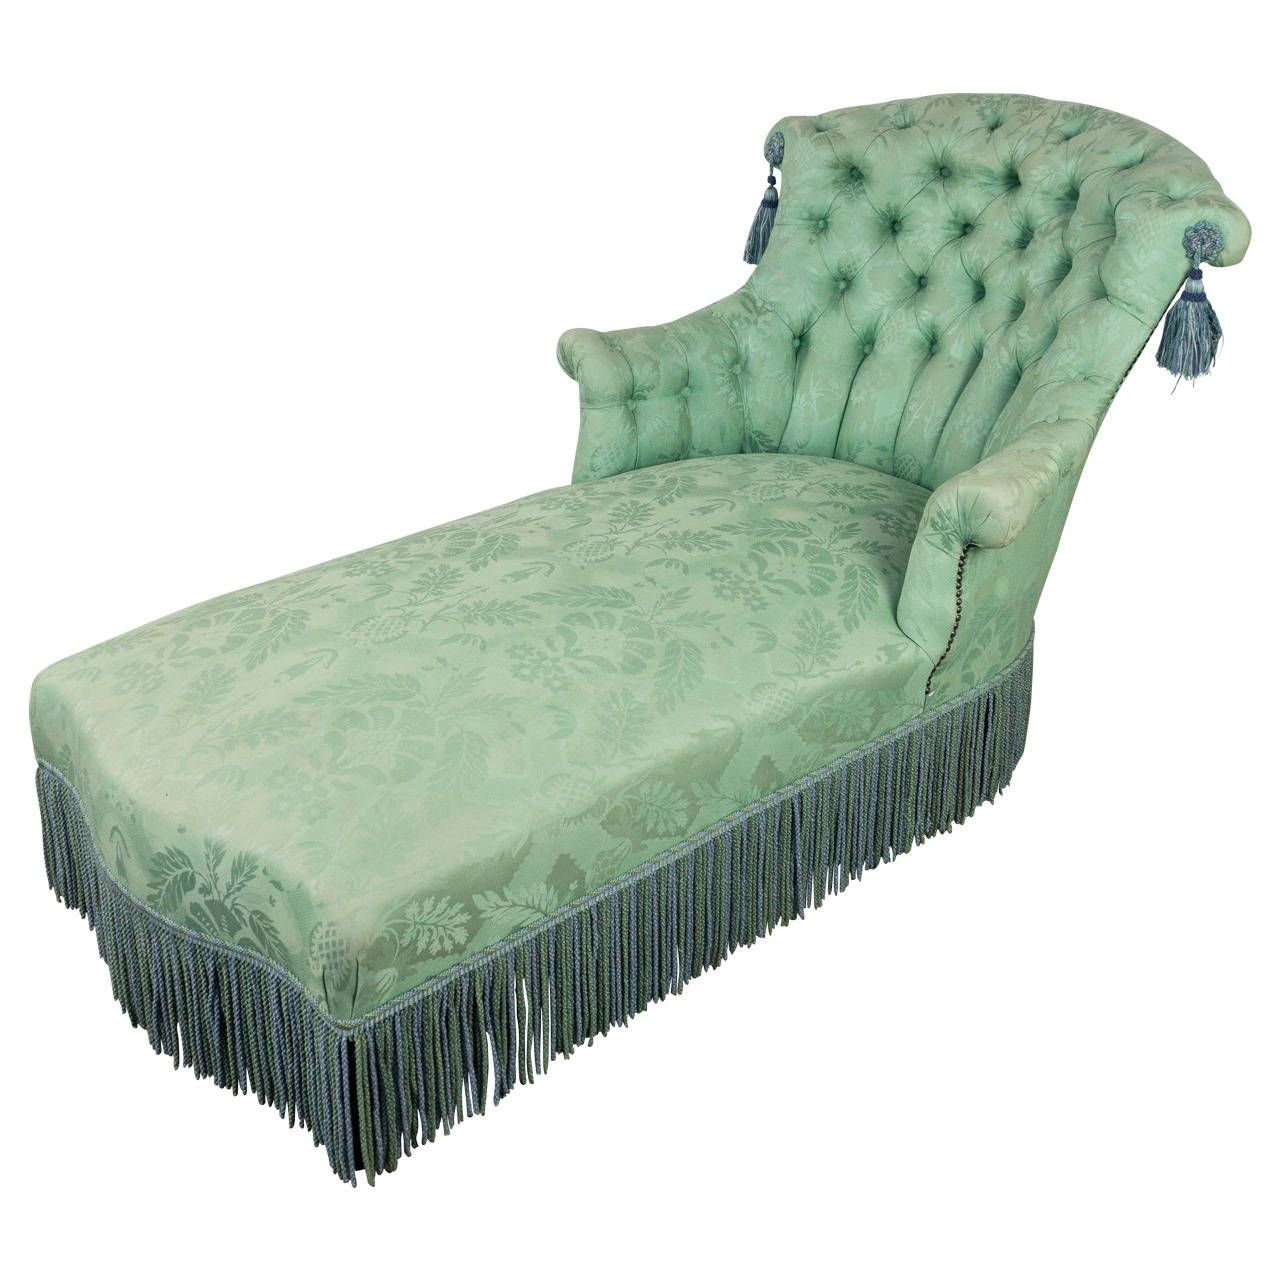 Chaise Longue in Pale Green Damask | Pinterest | Damasks, Modern and on antique daybed, antique commode, antique fountain, antique sofas, antique chaise couch, antique chalice, antique dresser, antique beds, antique egg, antique french country, antique recliner, antique glider, antique fabric, antique fainting couch, antique chair, antique books, antique chaise lounge, antique armchairs, antique lighting, antique parasol,